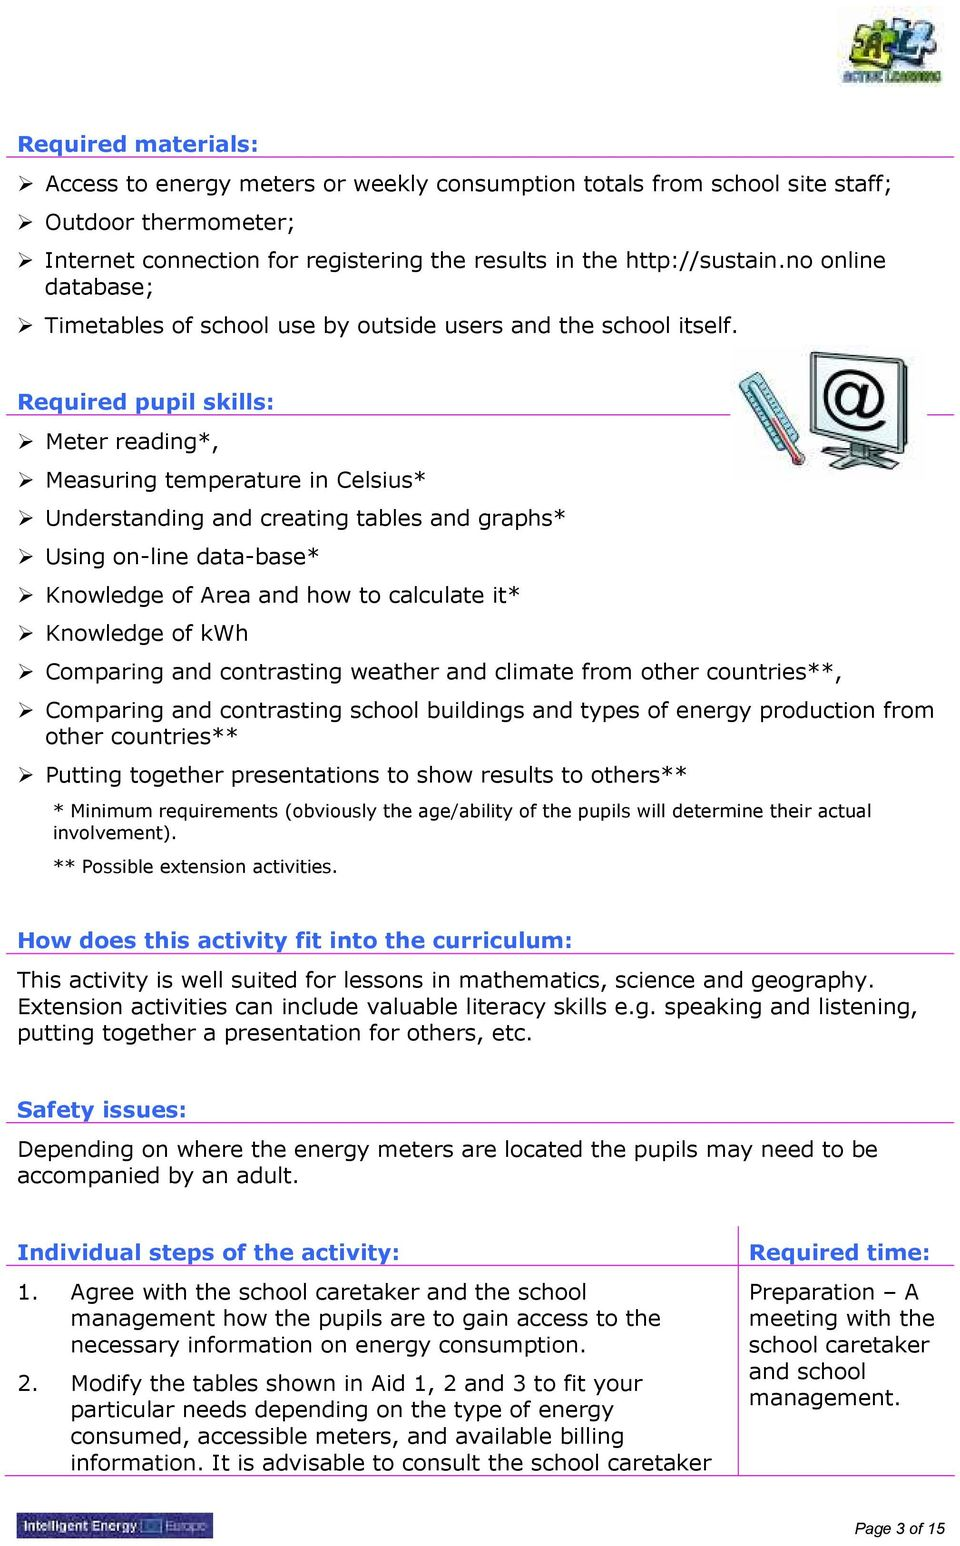 Required pupil skills: Meter reading*, Measuring temperature in Celsius* Understanding and creating tables and graphs* Using on-line data-base* Knowledge of Area and how to calculate it* Knowledge of